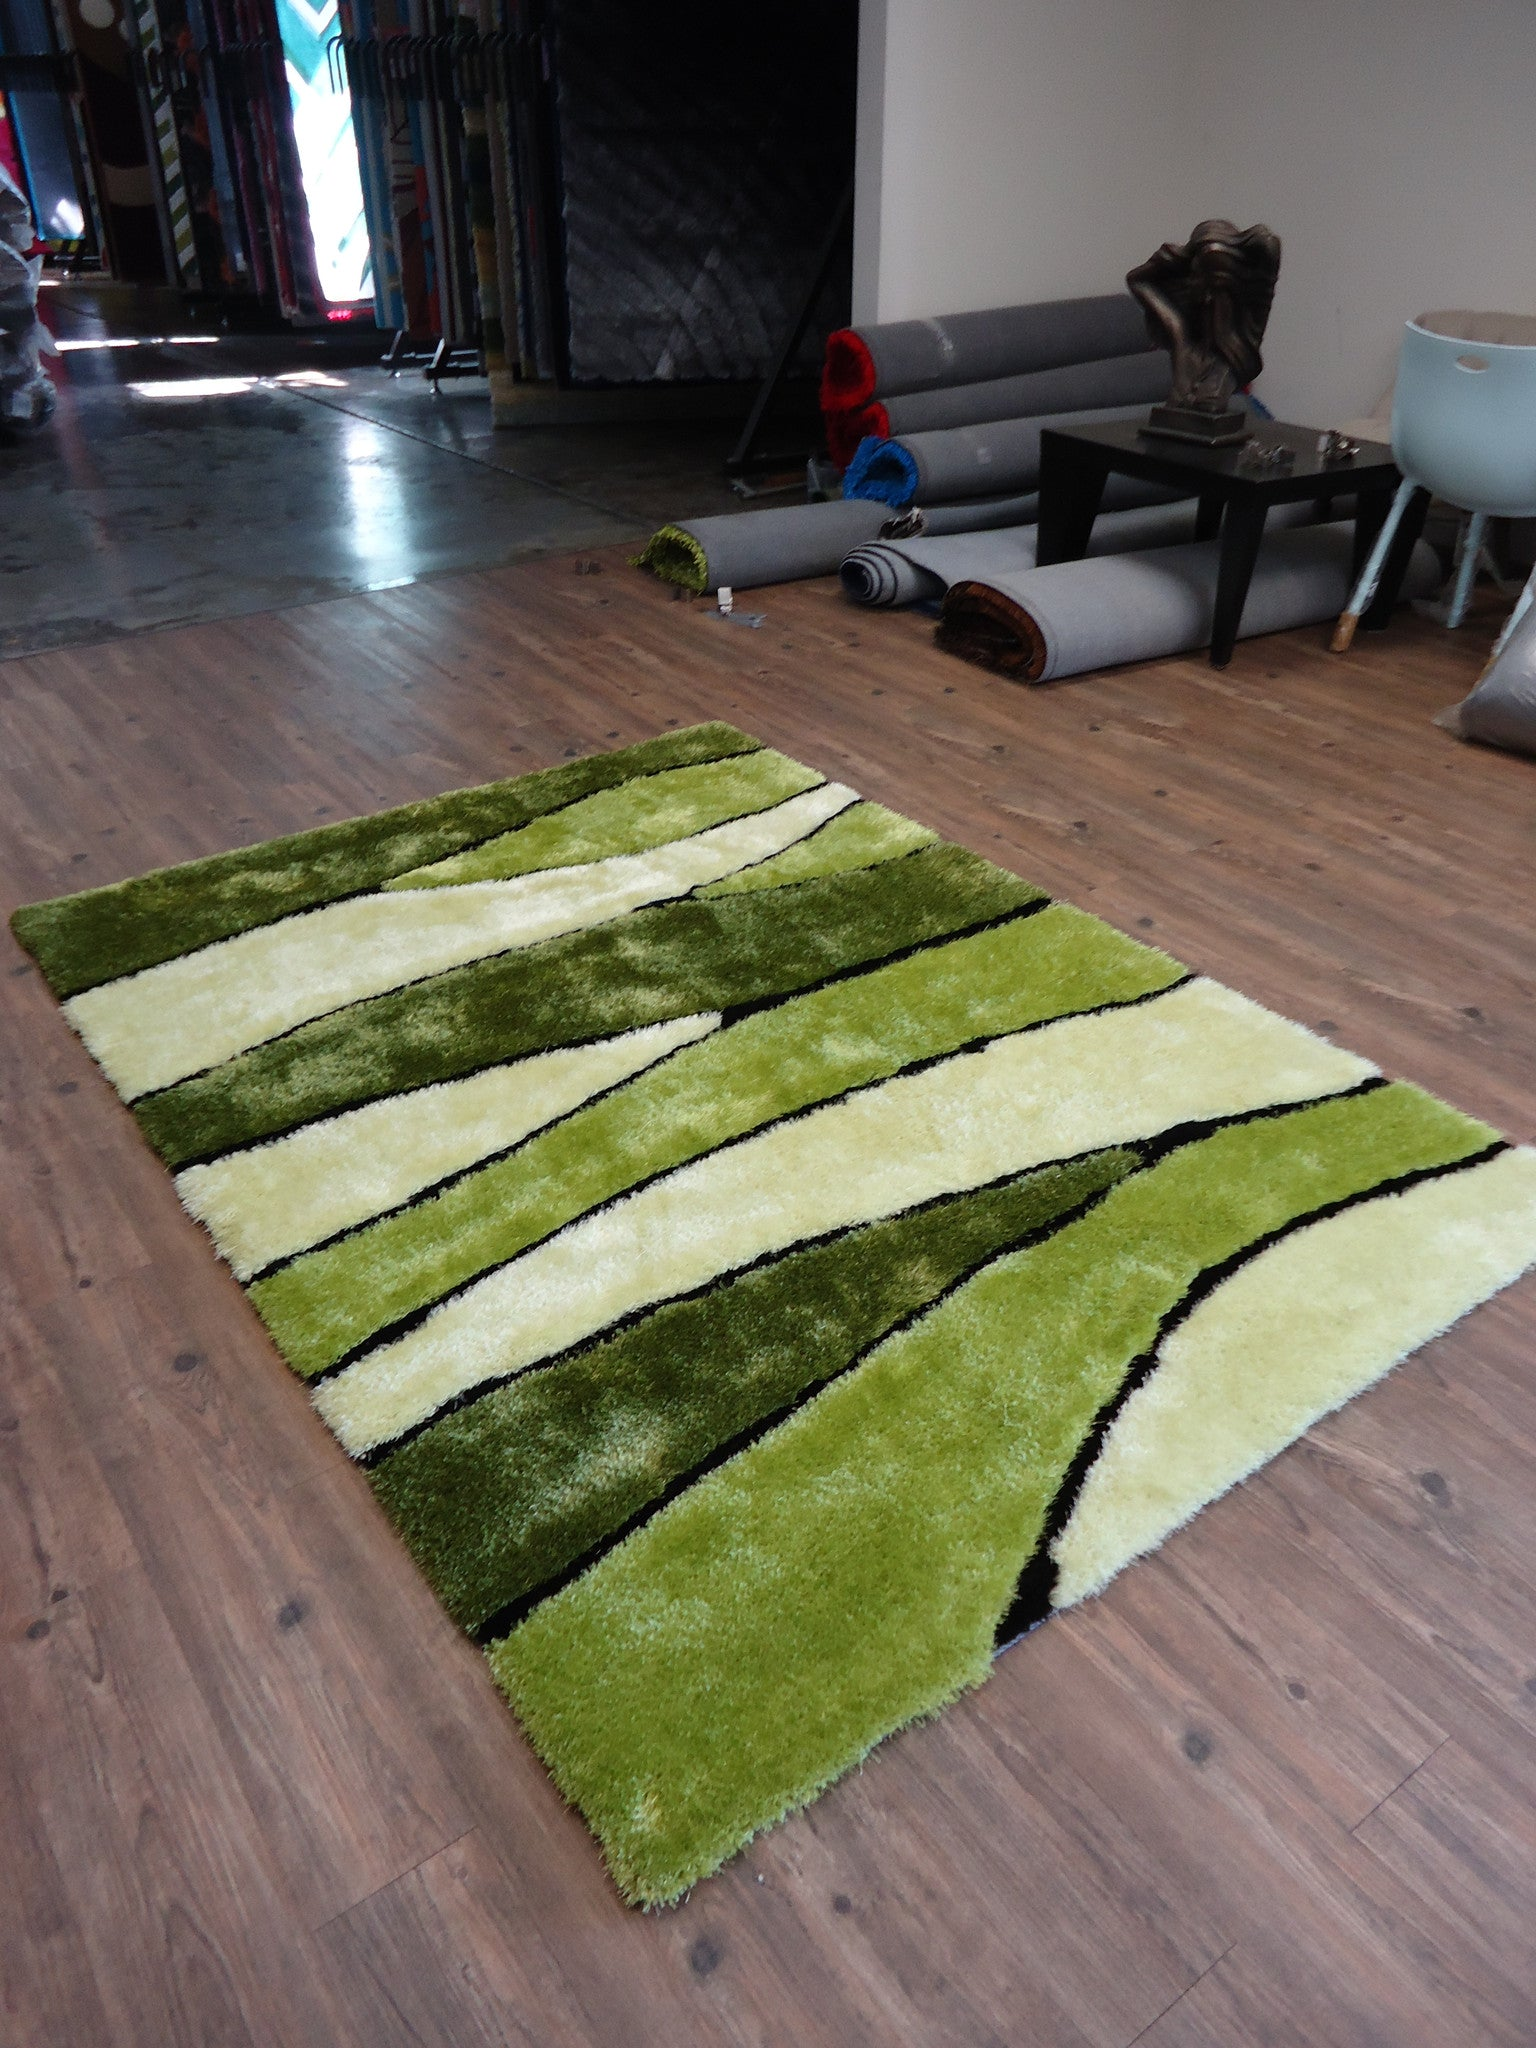 ... Handmade Vibrant Green Shag Area Rug With Hand Carved Design 5 X 7 Ft.